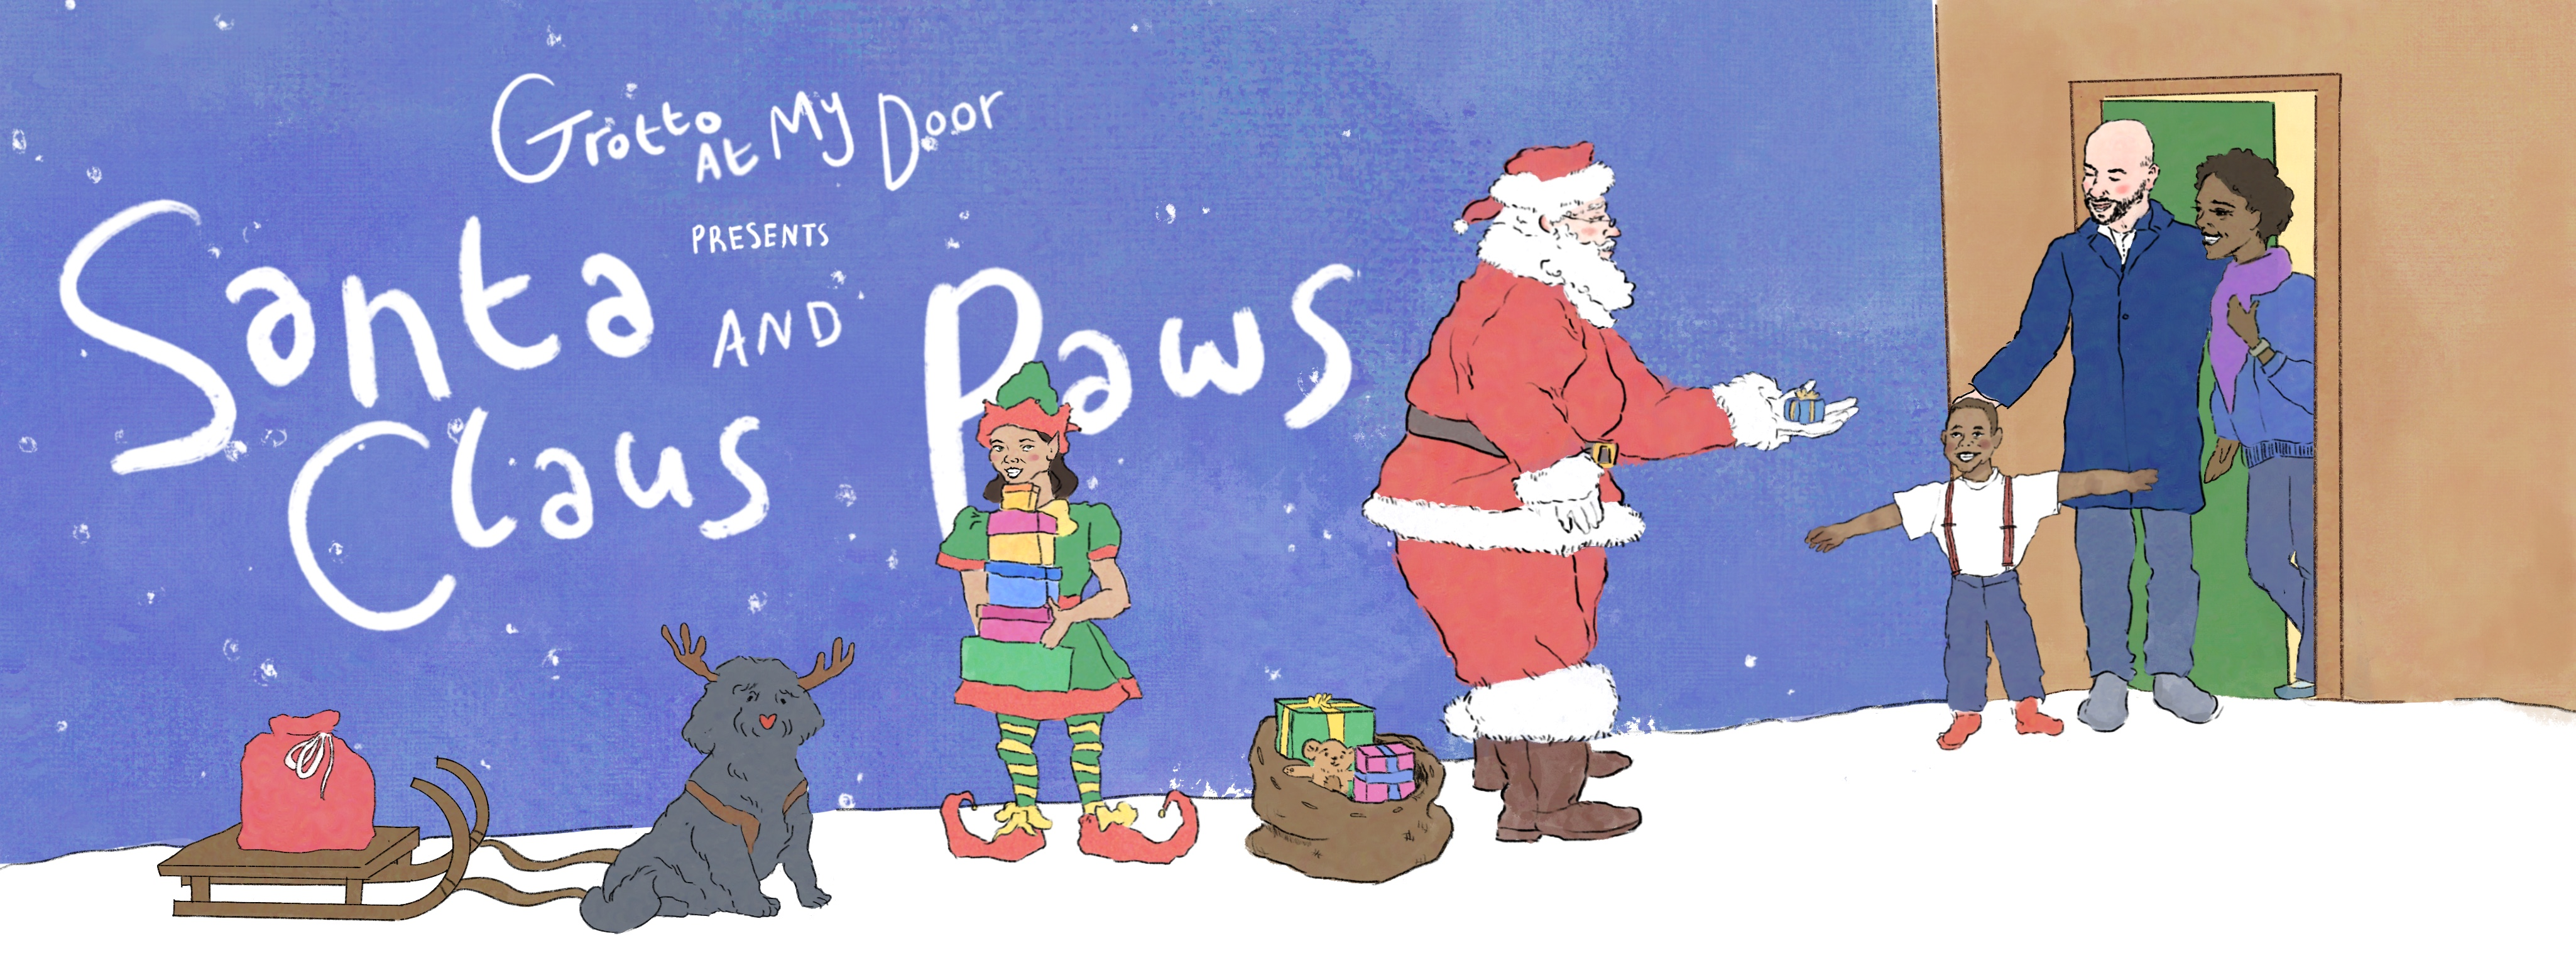 Grotto At My Door presents Santa Claus and Paws